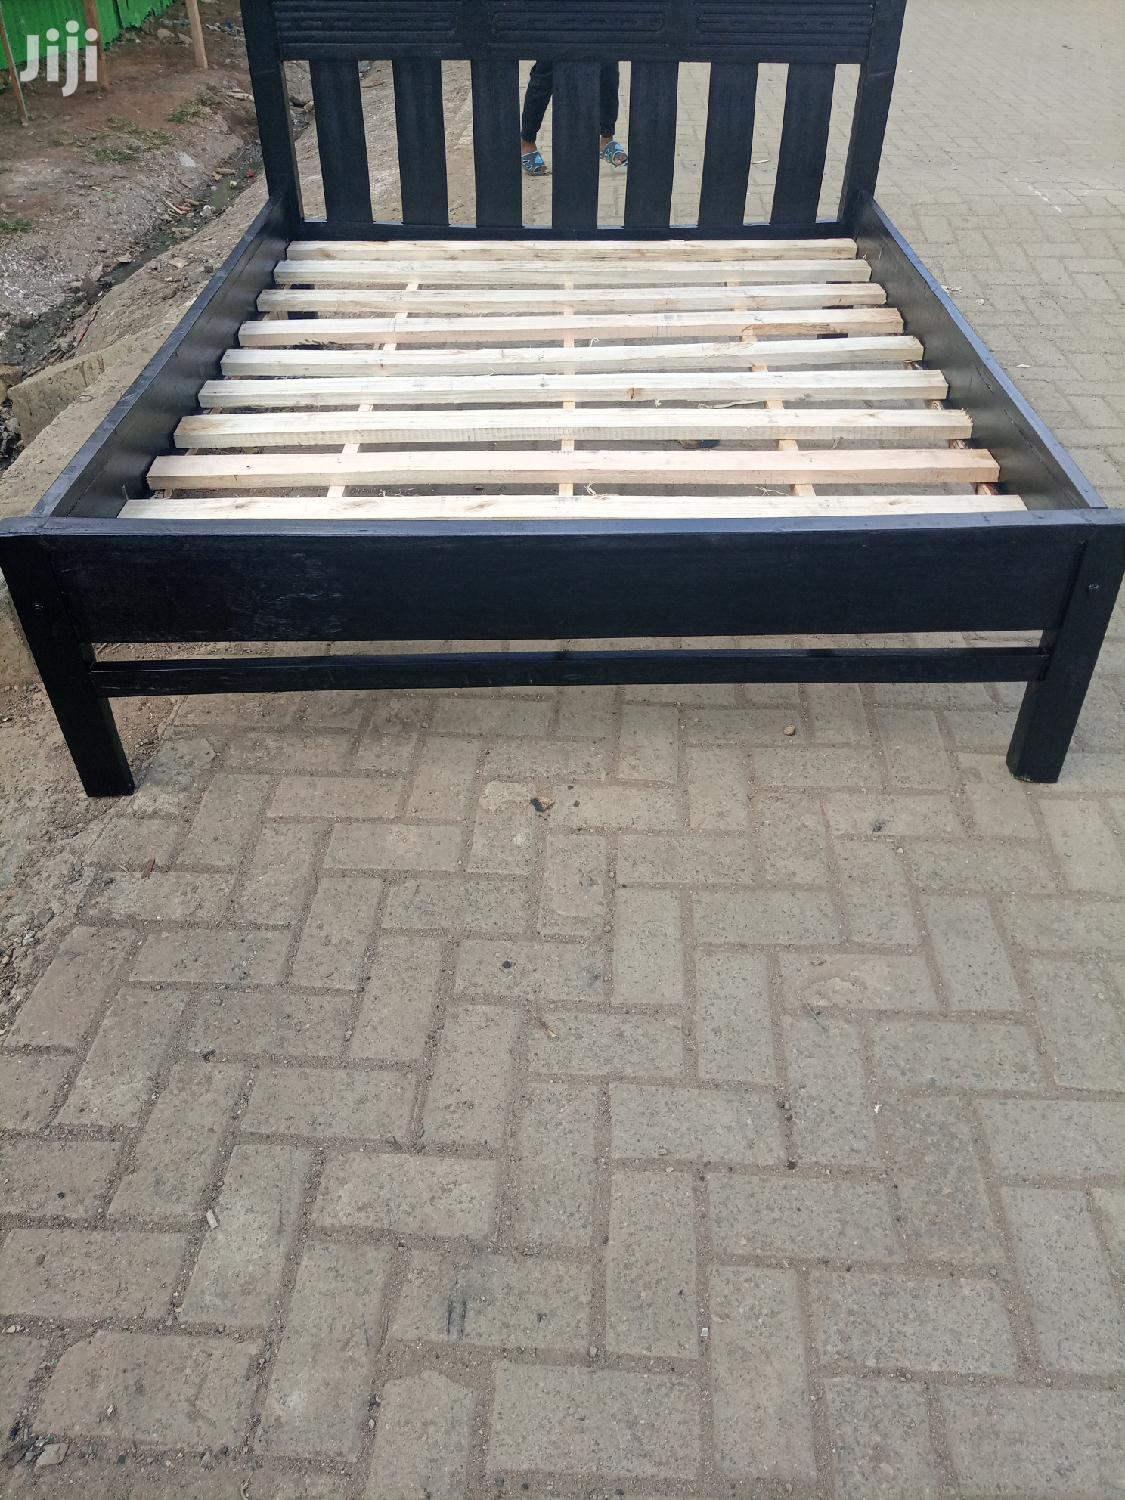 5 by 6 New Durable and Quality Beds